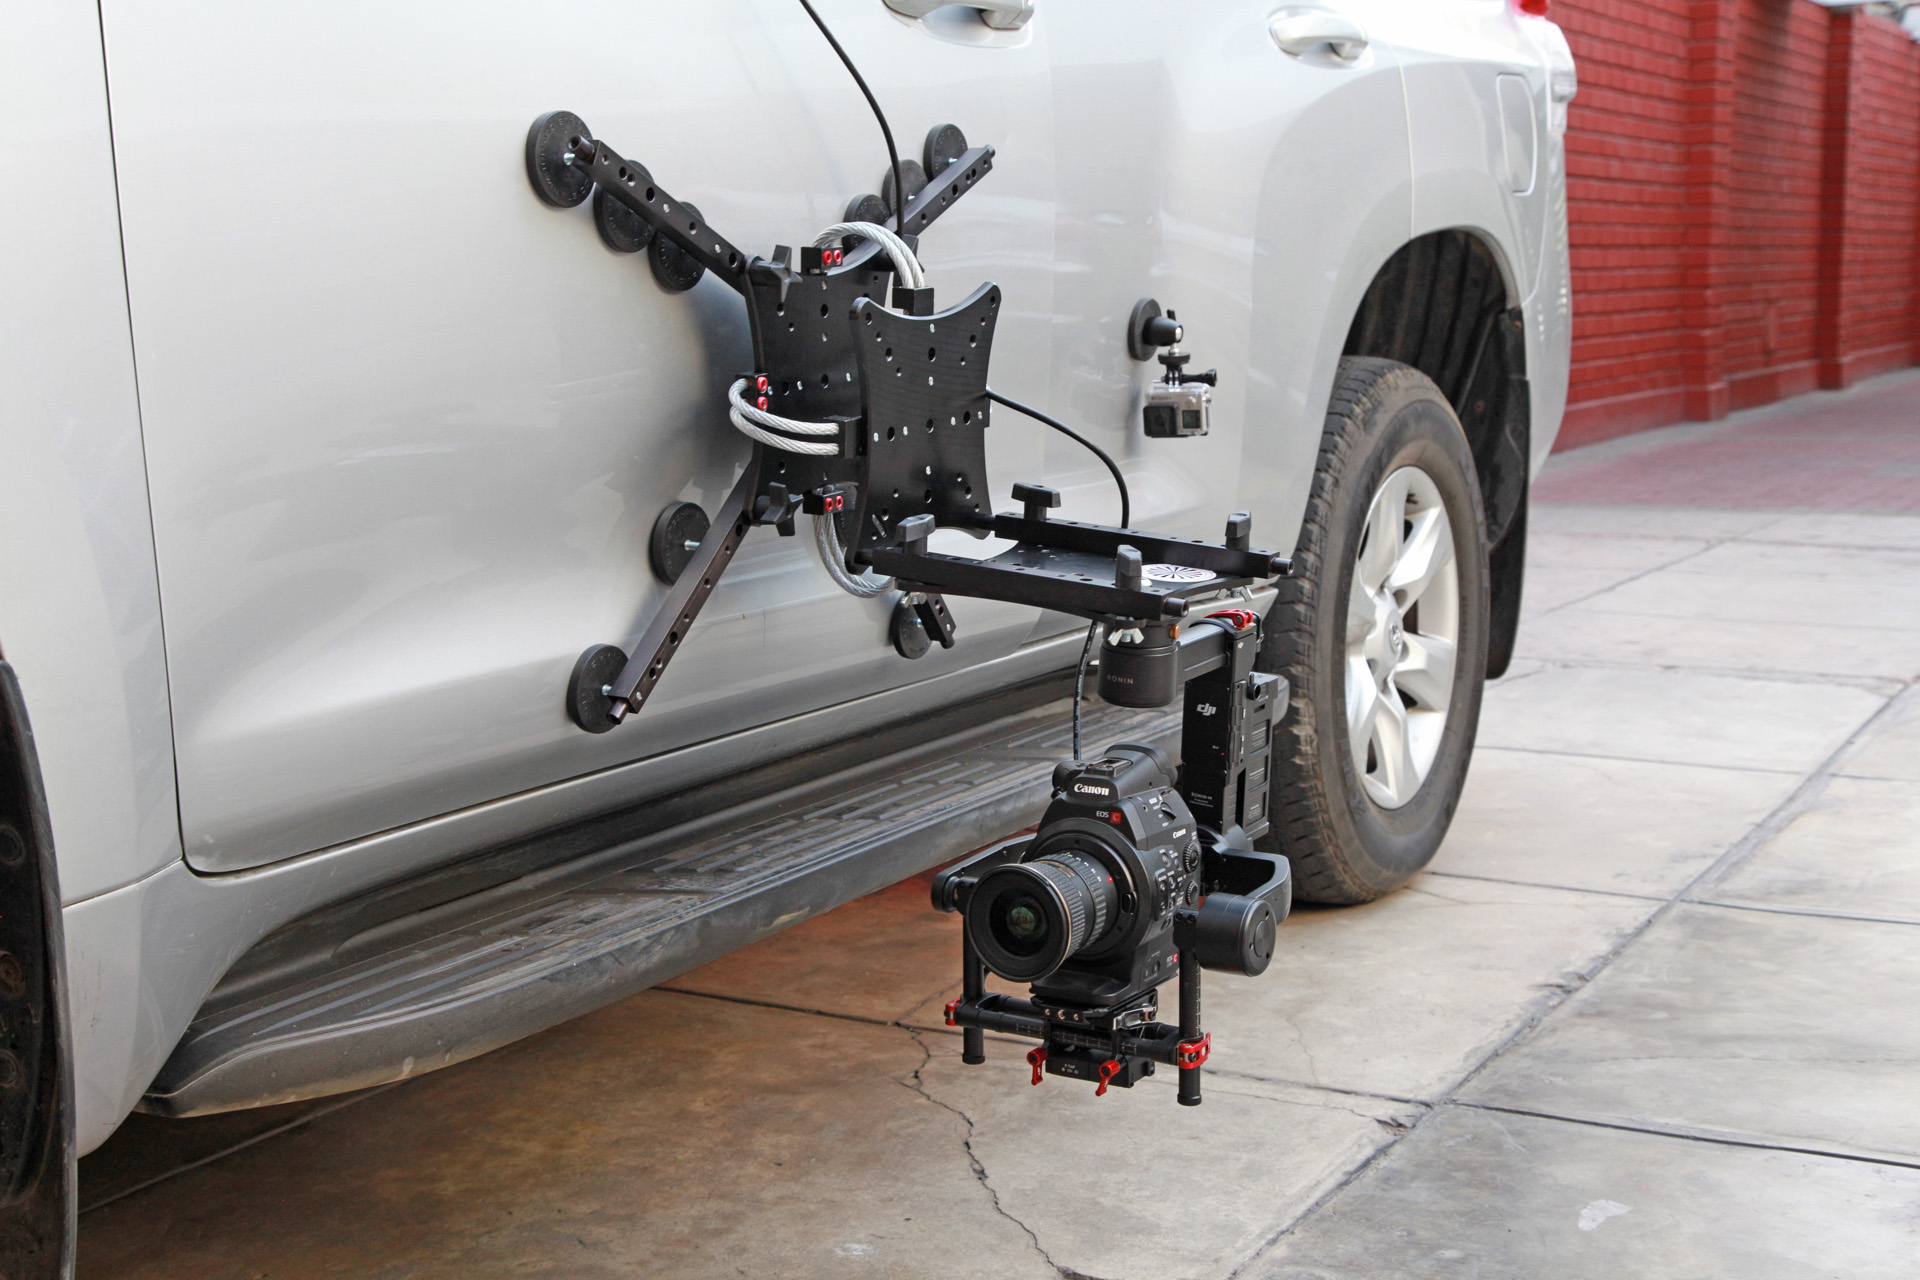 vibration isolator for camera gimbal